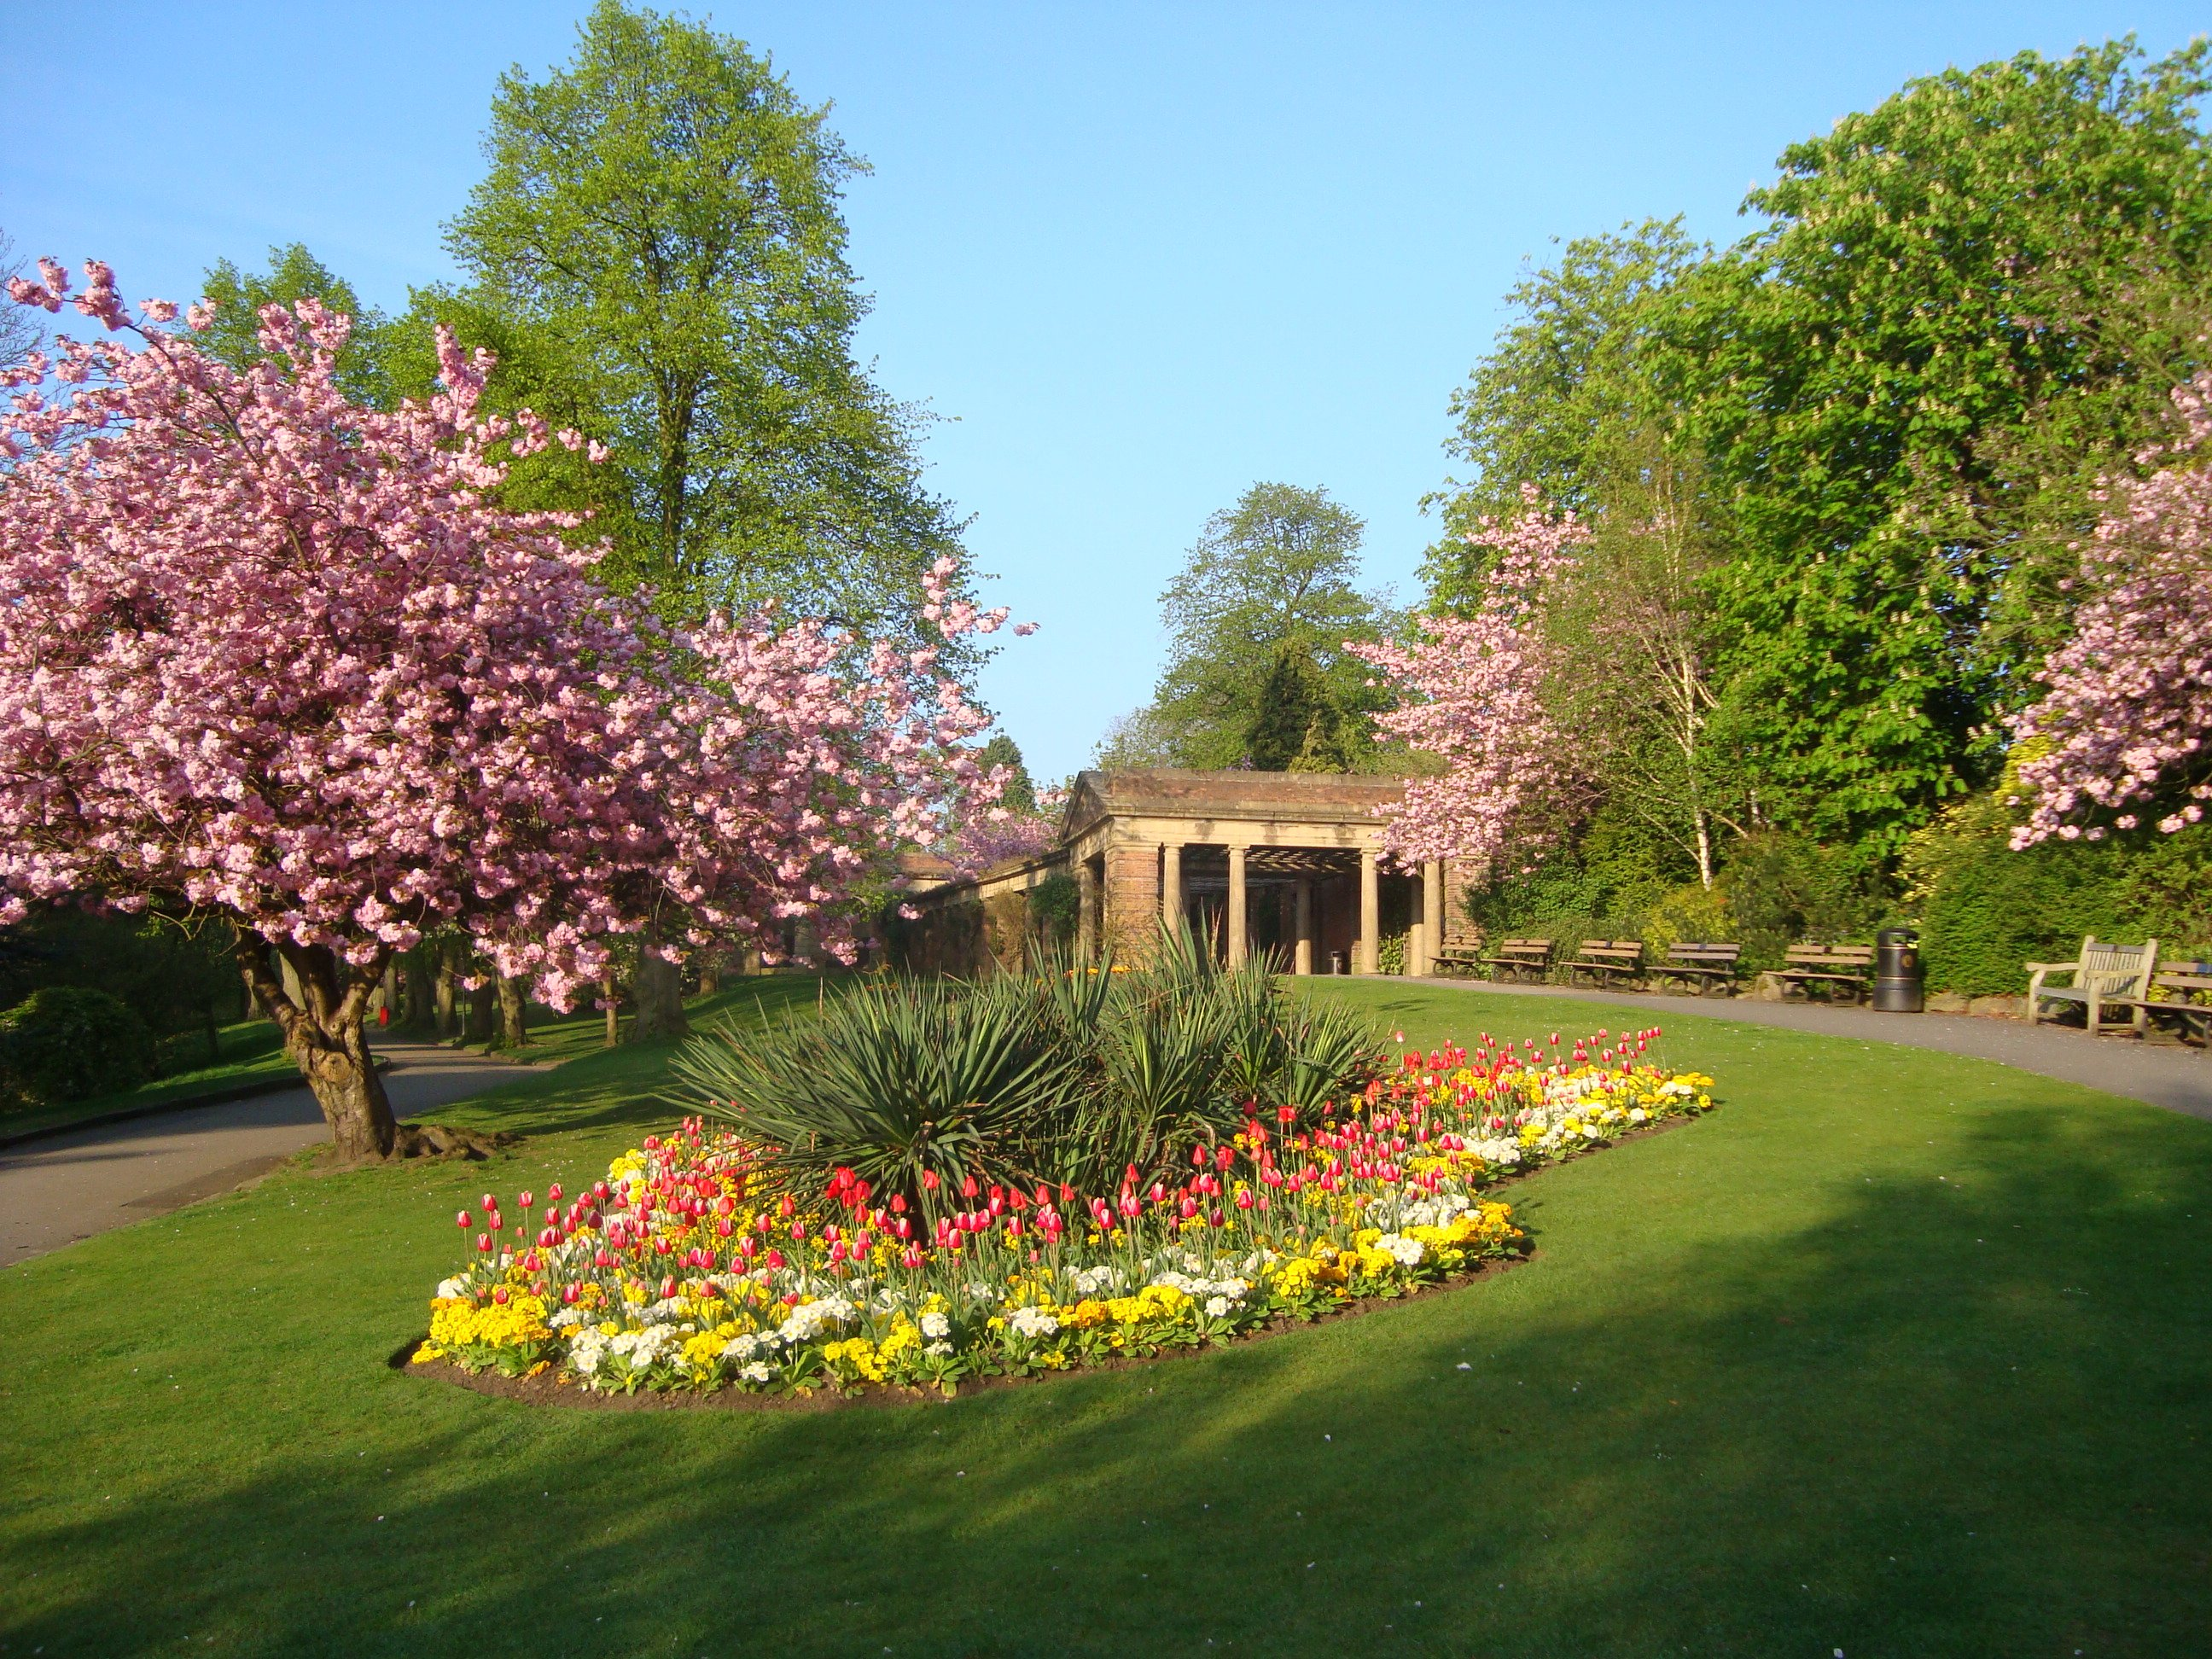 Valley Gardens Sun Colonnade - Photo by Visit Harrogate